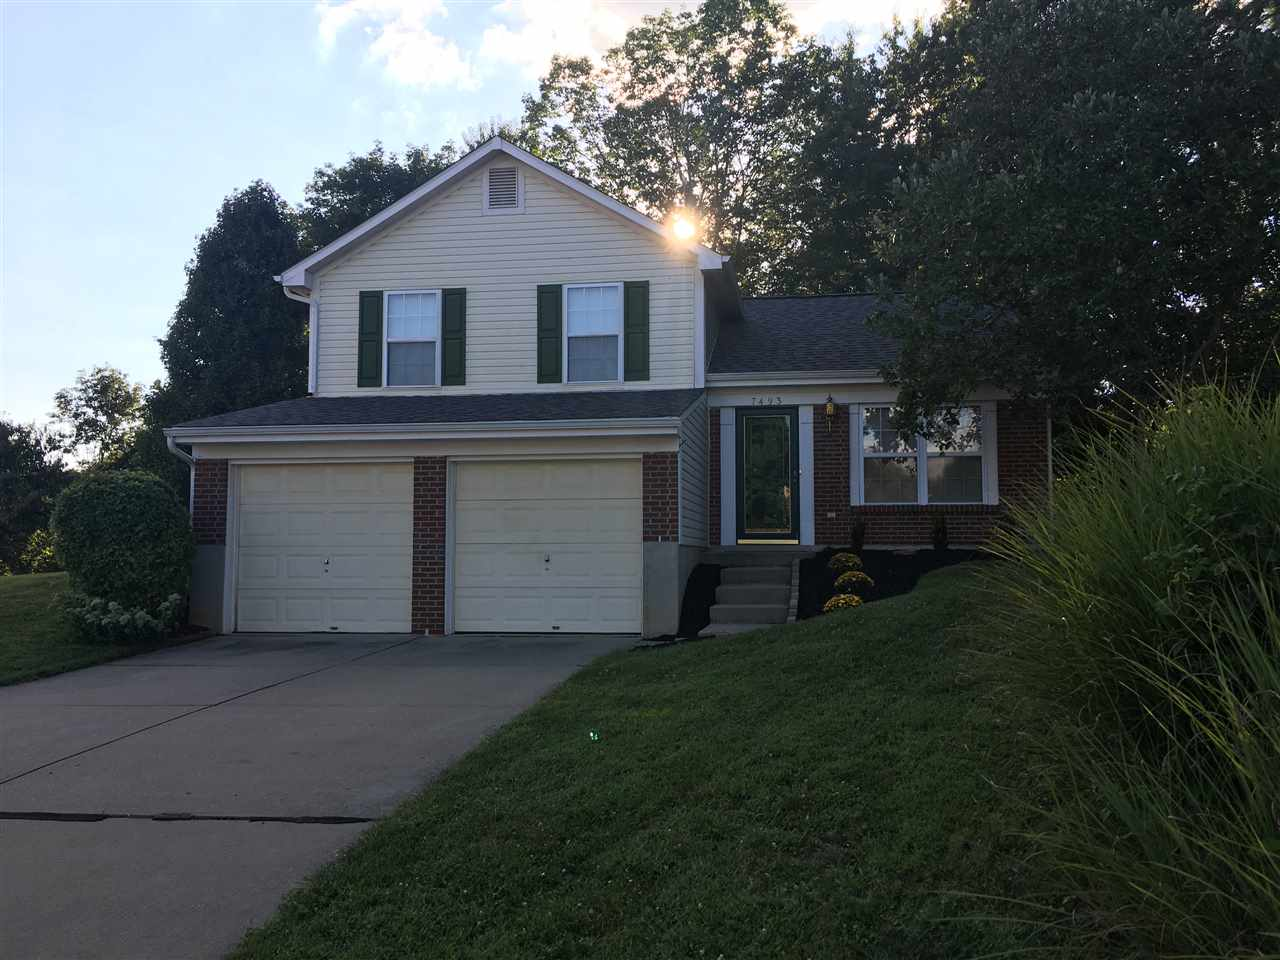 Photo 1 for 7493 Sterling Springs Way Burlington, KY 41005